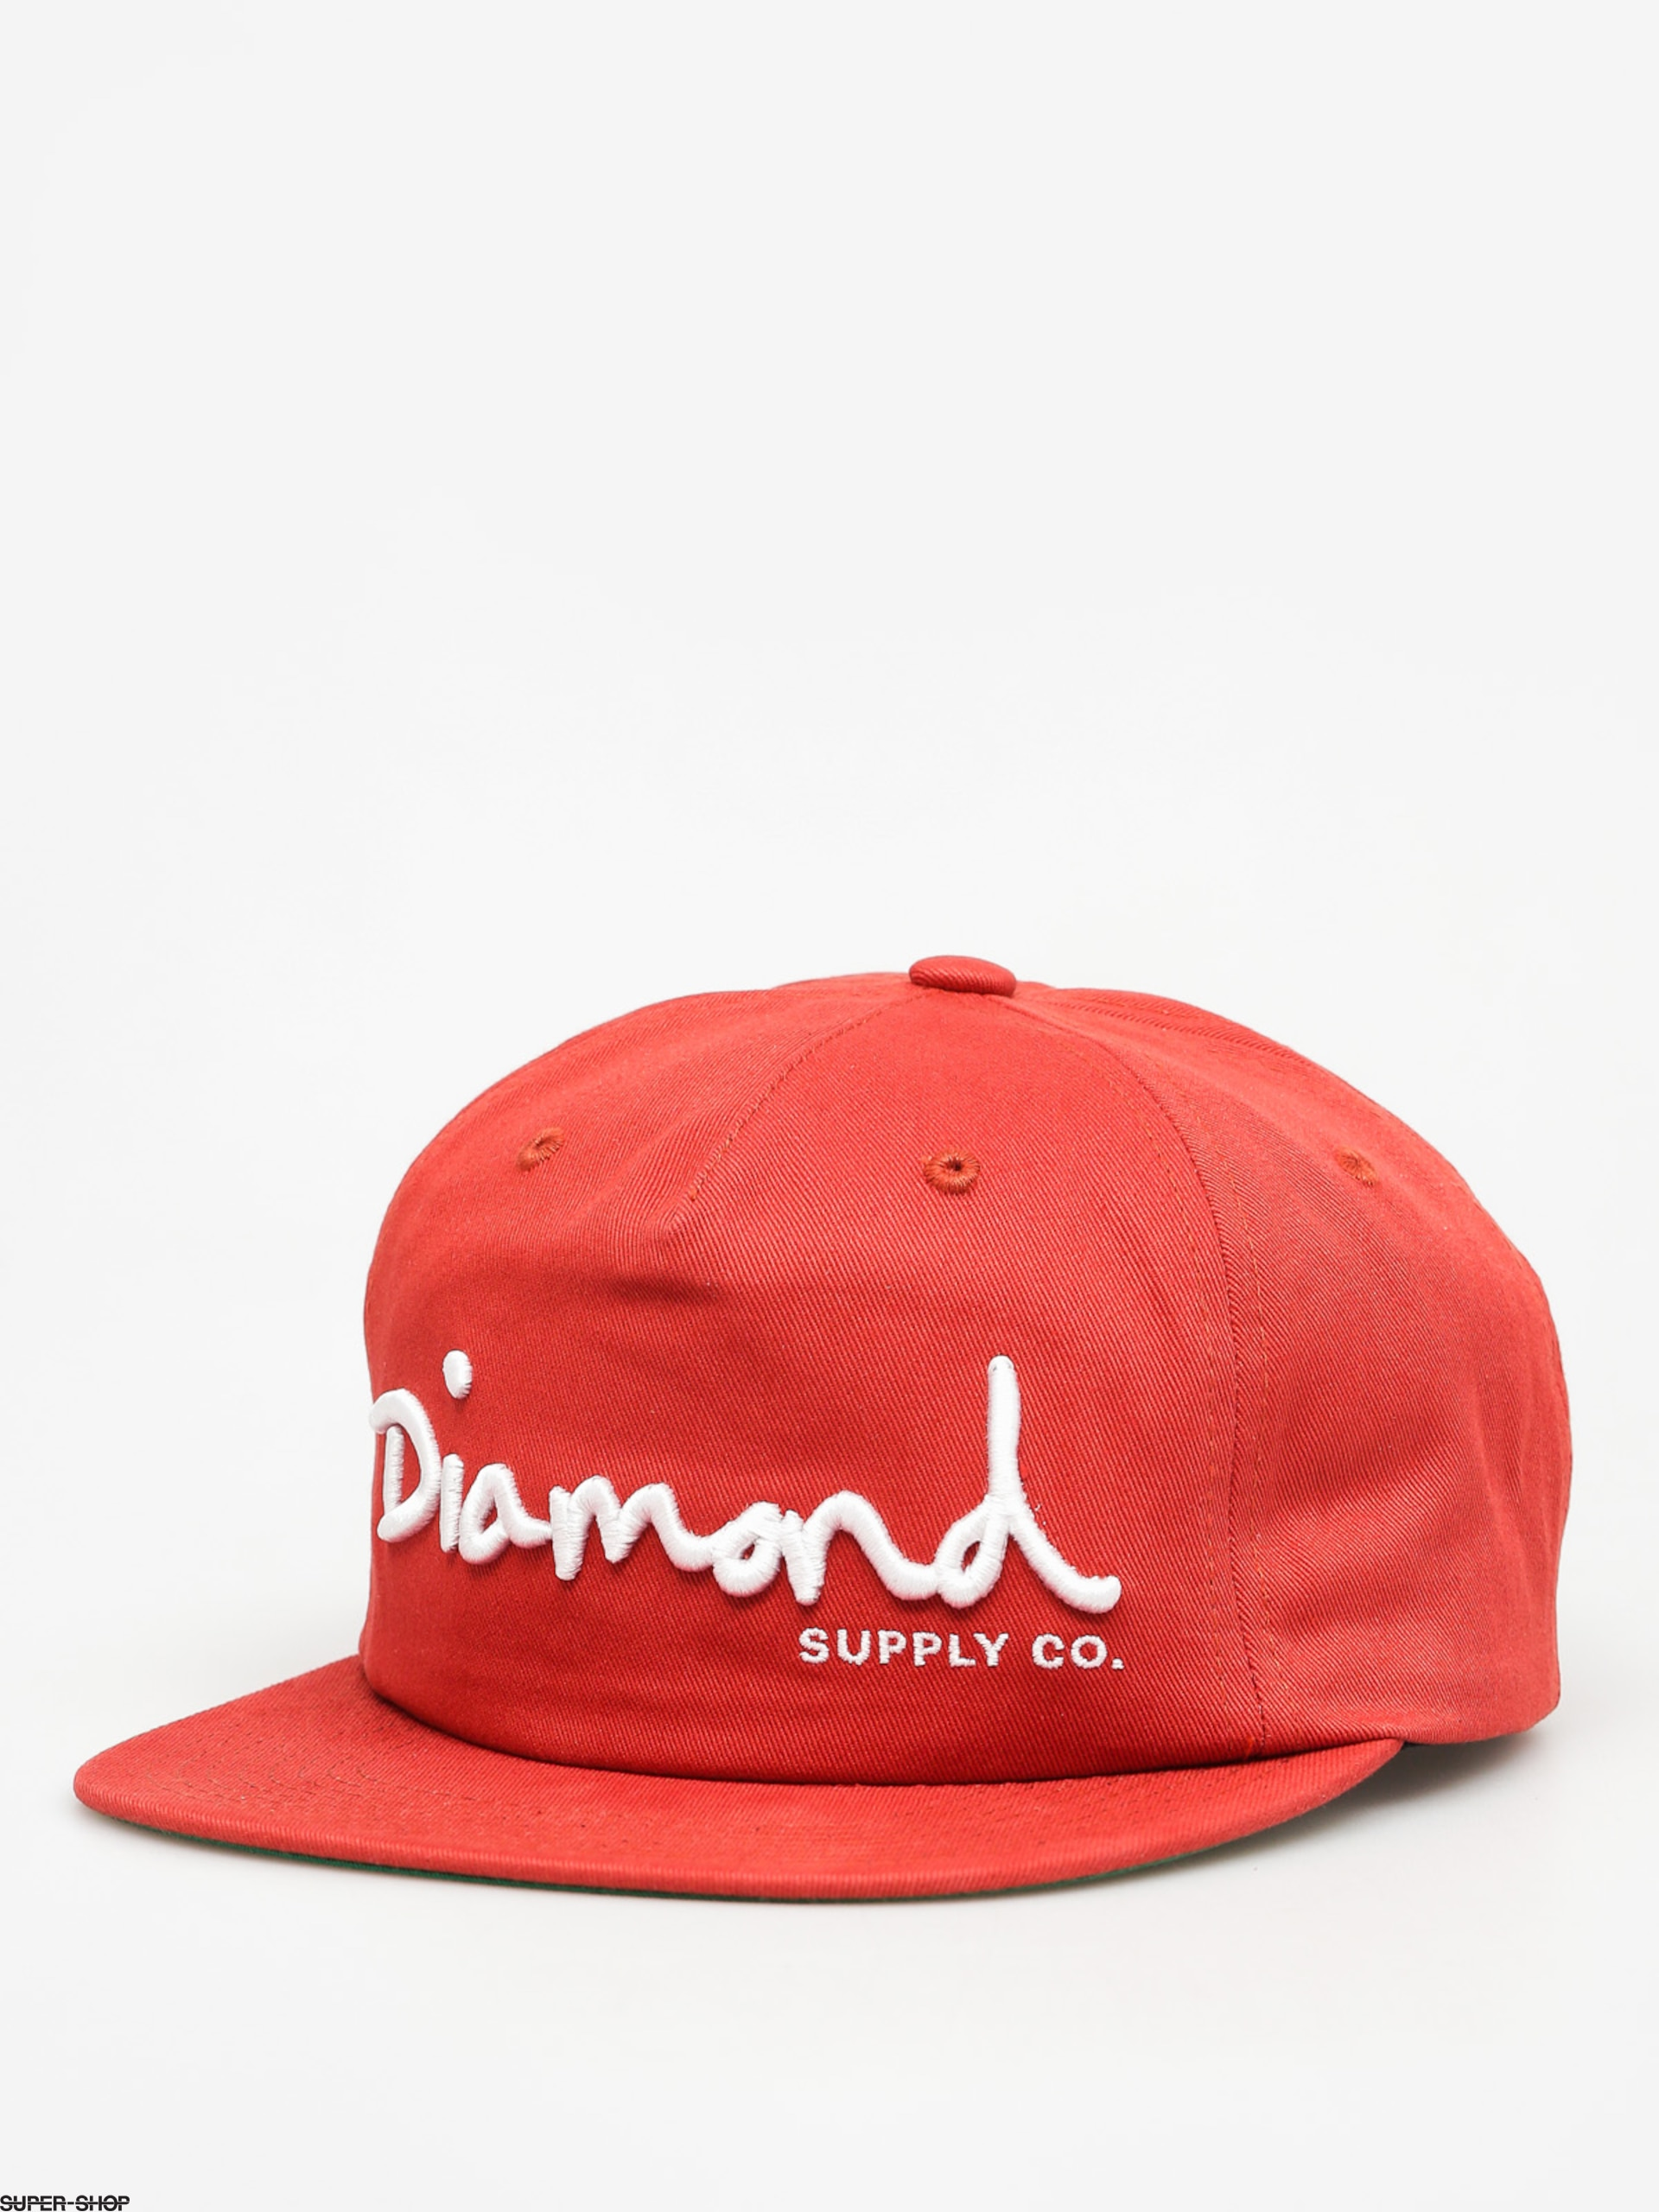 Diamond Supply Co. Cap Og Script Snapback ZD (red)